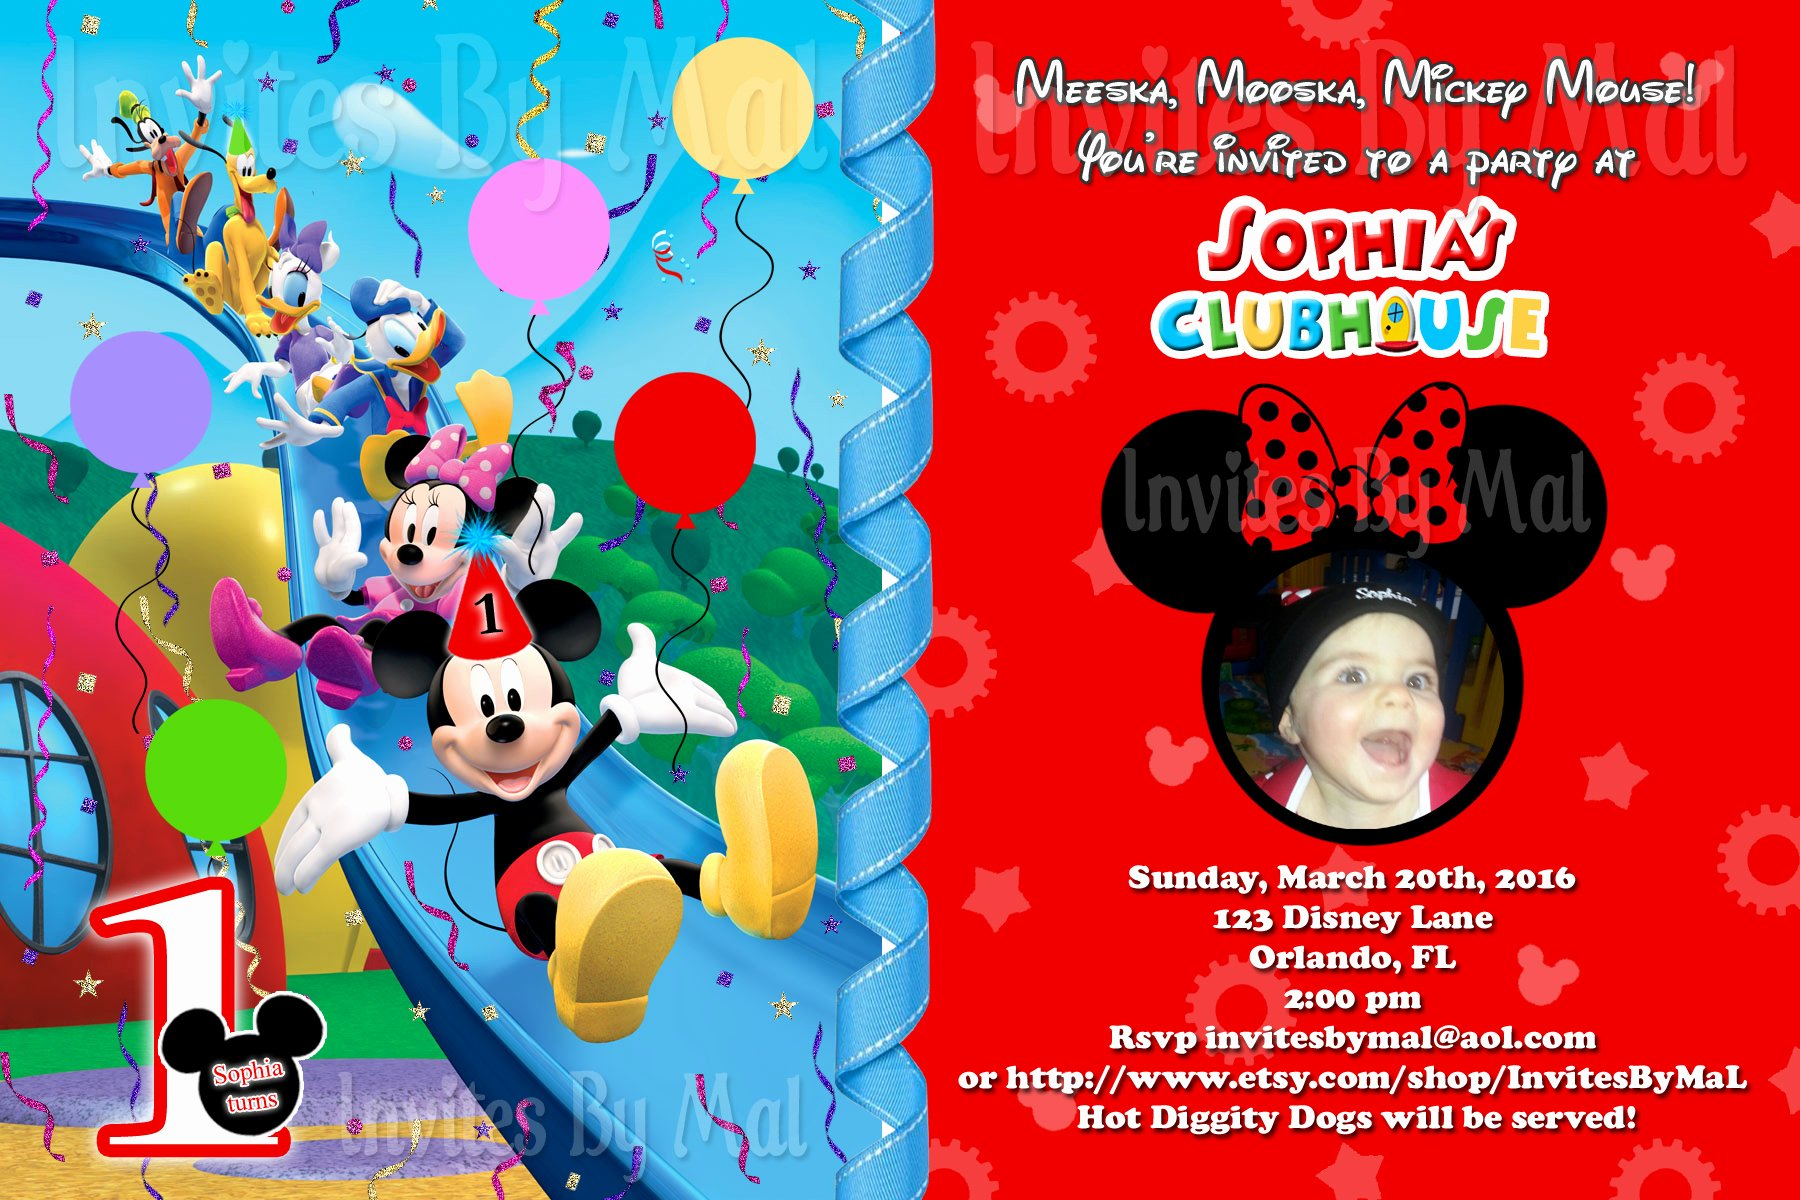 Free Mickey Mouse Clubhouse Invitations Awesome Mickey Mouse 1st Birthday Invitations Free Invitation